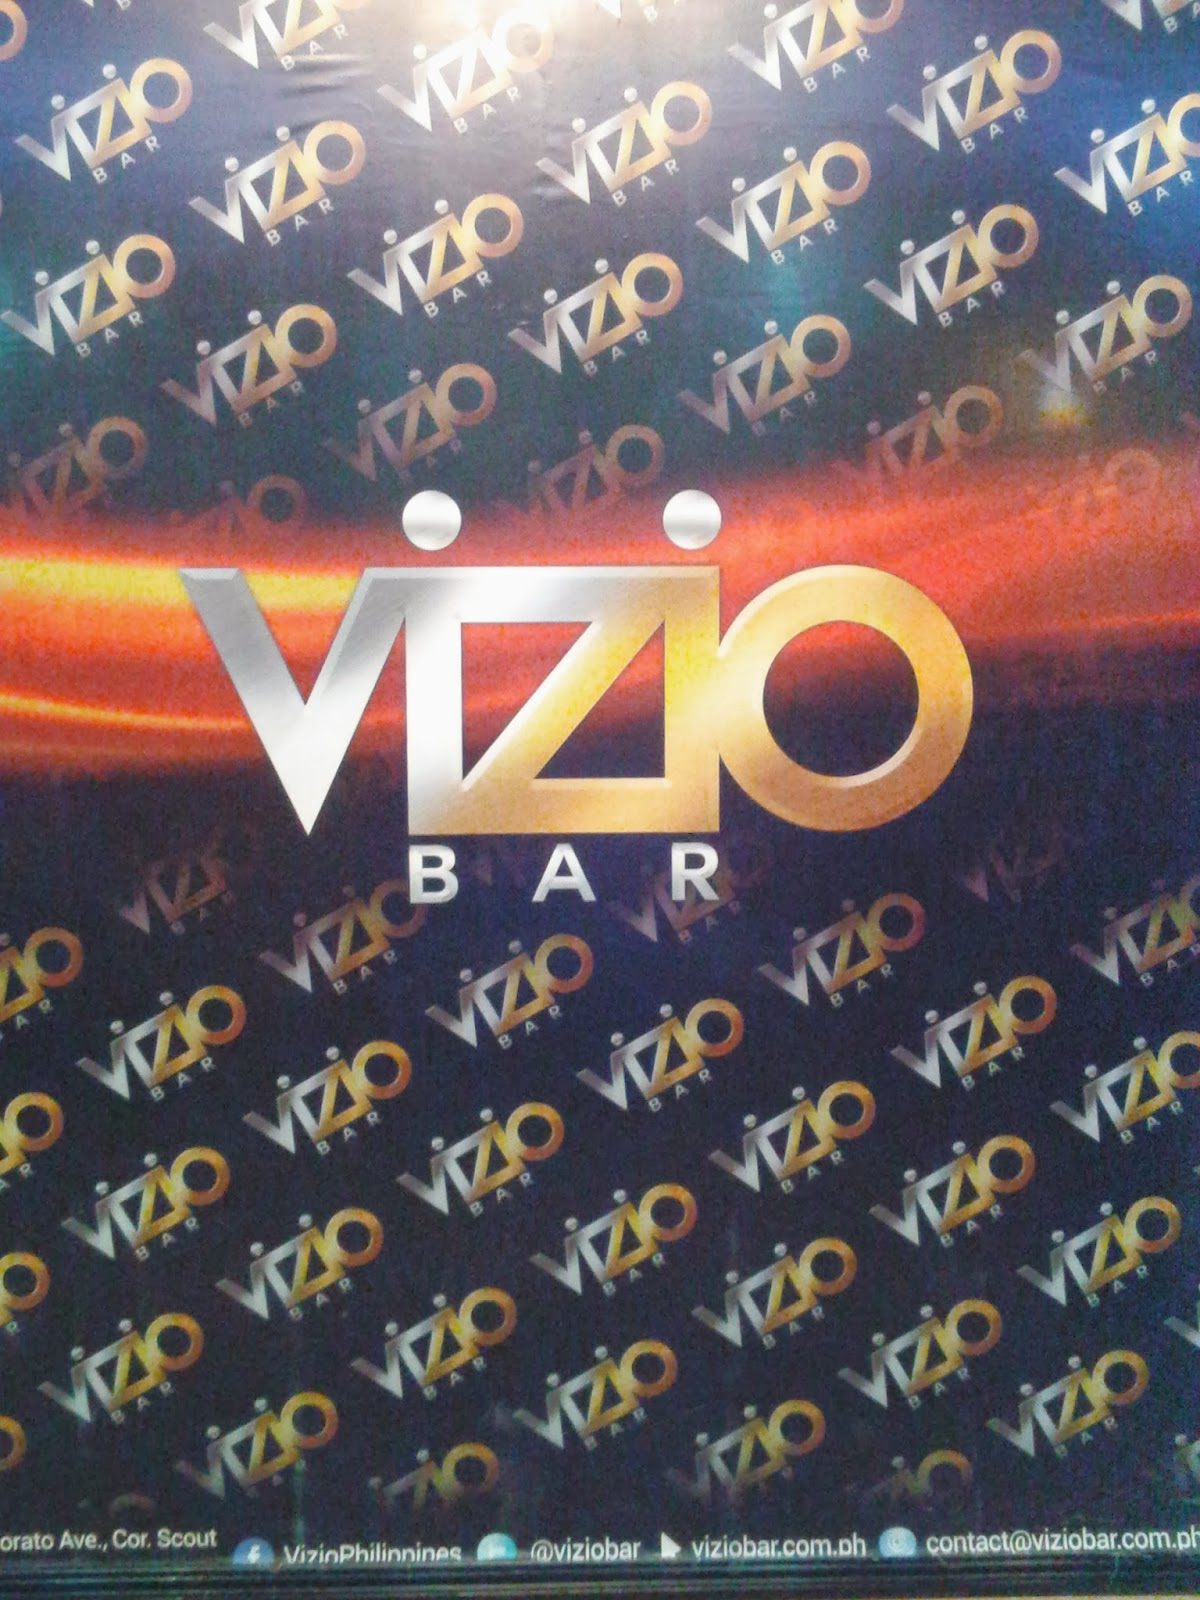 Party Night at Vizio Bar | The World According To Me